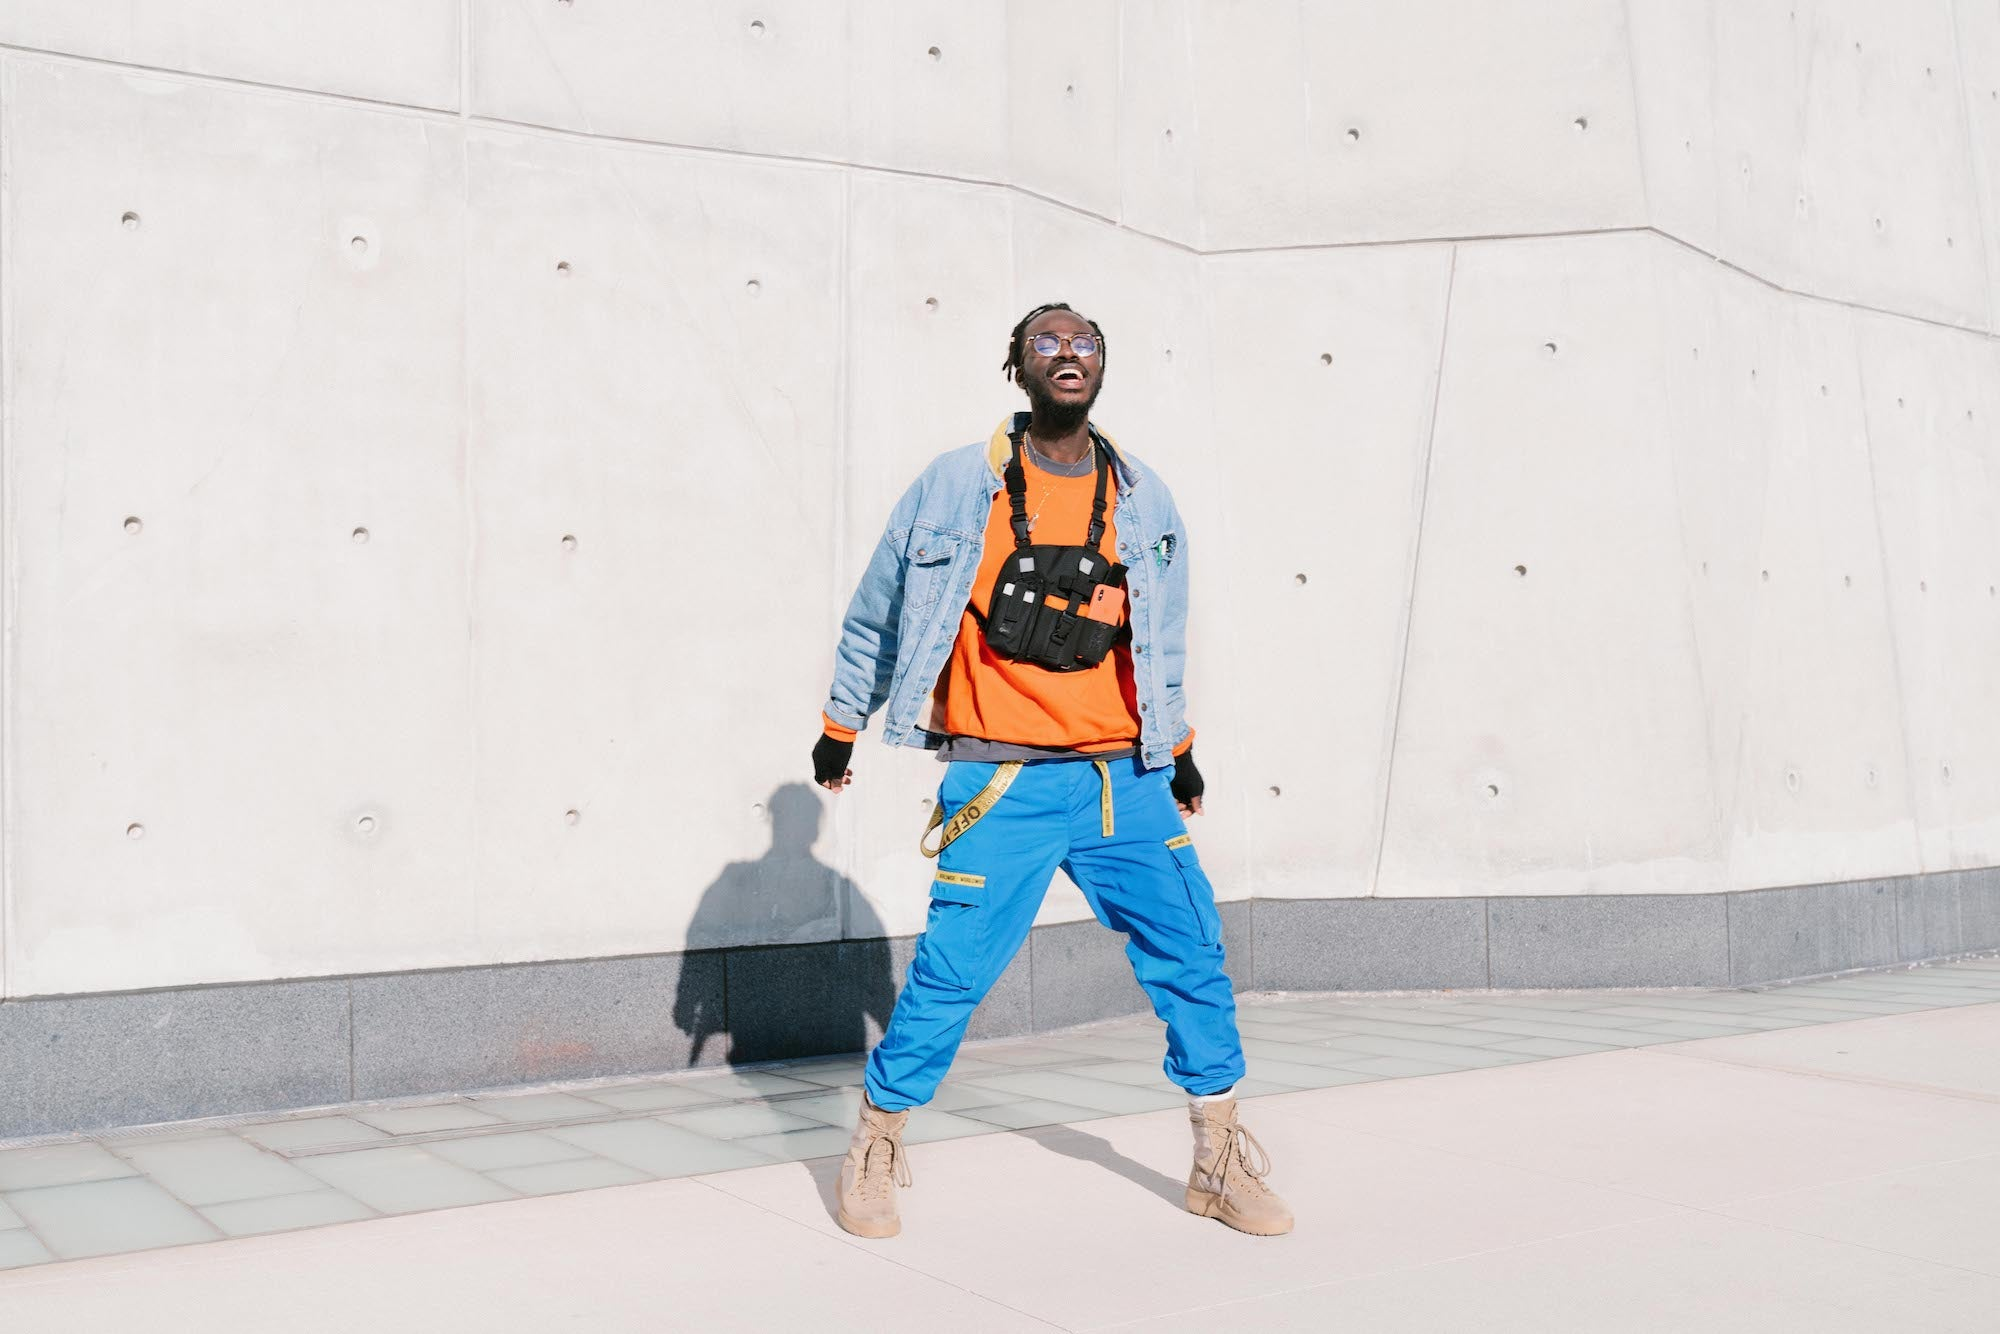 Meet Iddrus Sandu as He Merges Hip-Hop Culture with the Tech World.